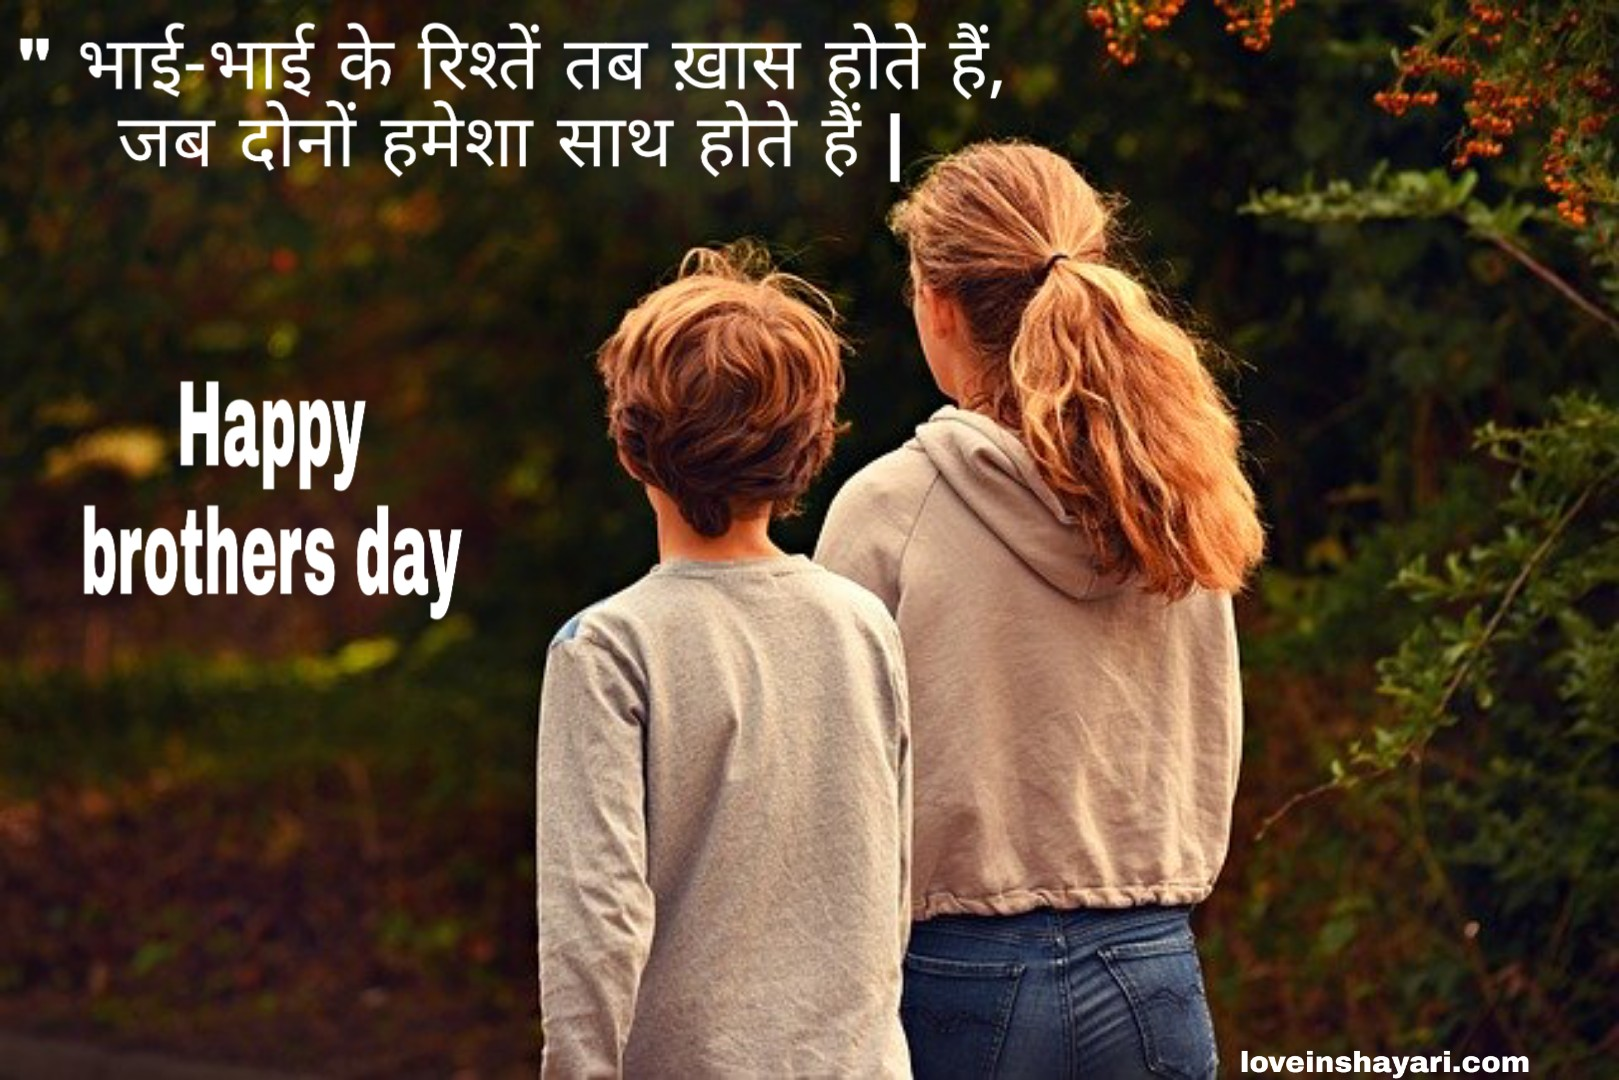 Happy brothers day images